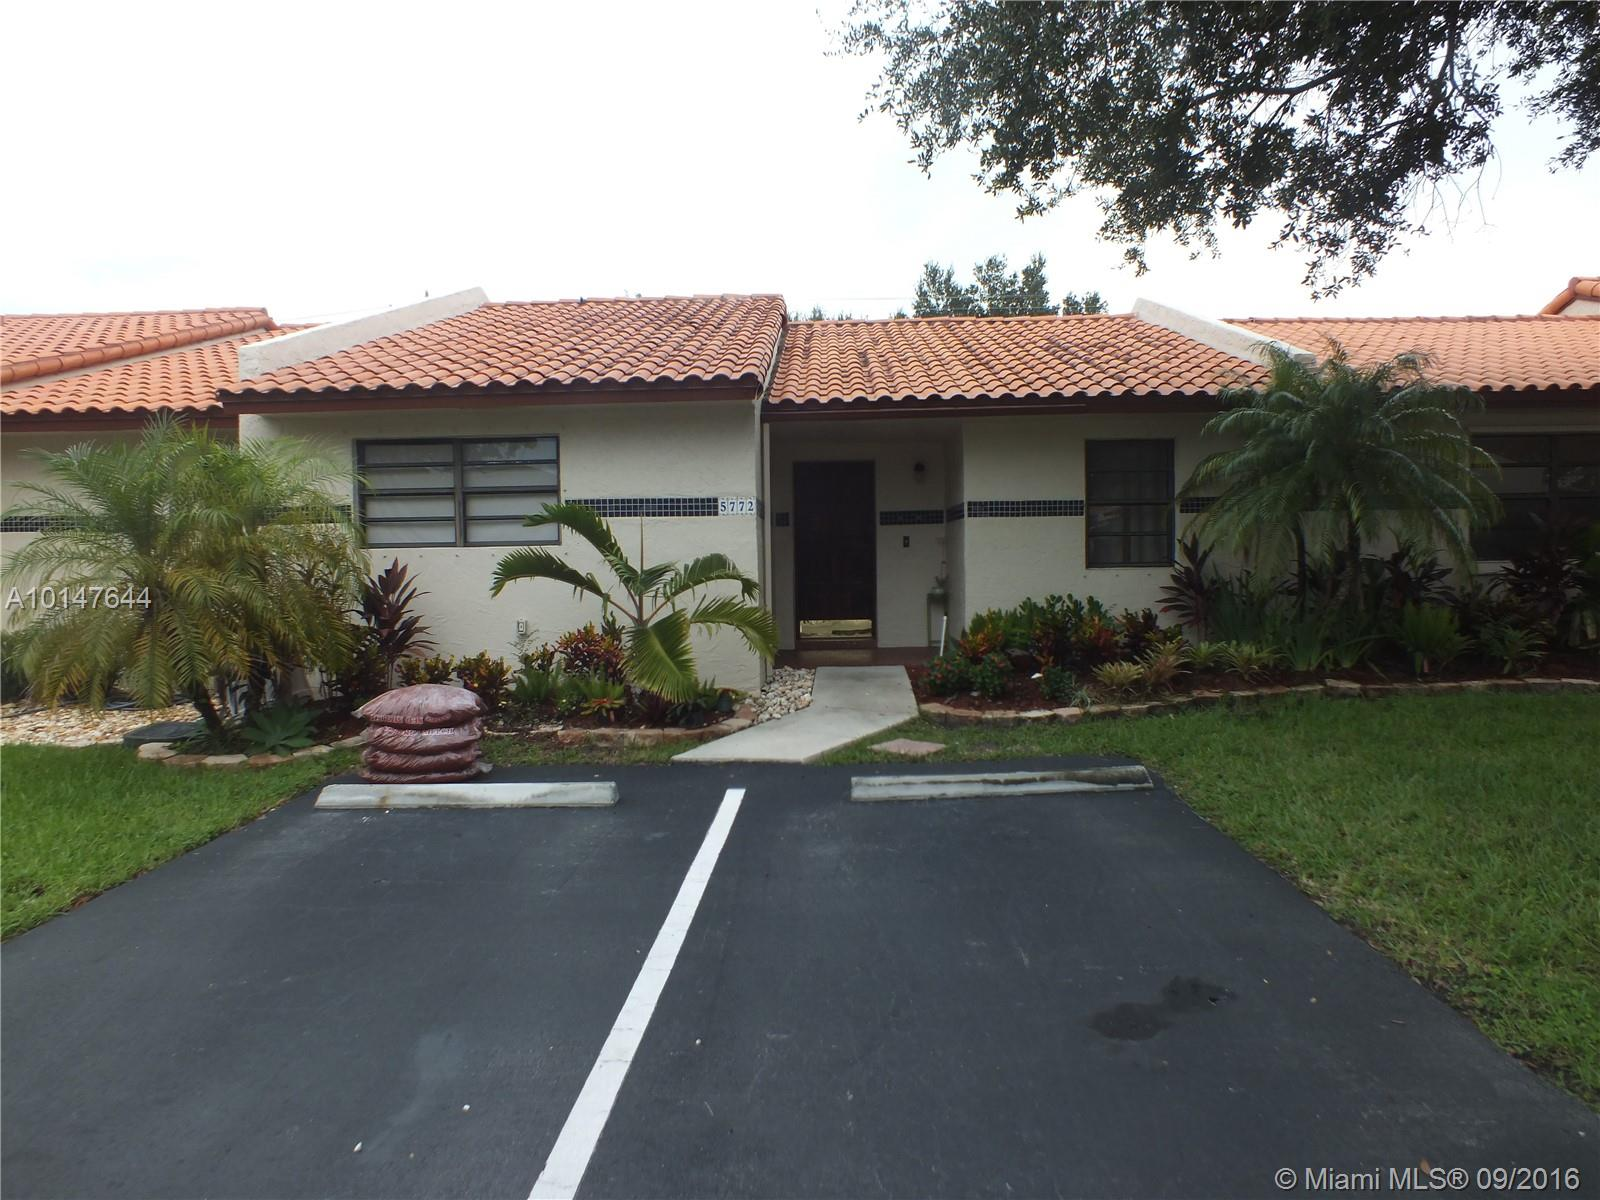 5772 sw 112th ter unit 5772 cooper city fl 33330 mls for 11263 sw 112 terrace